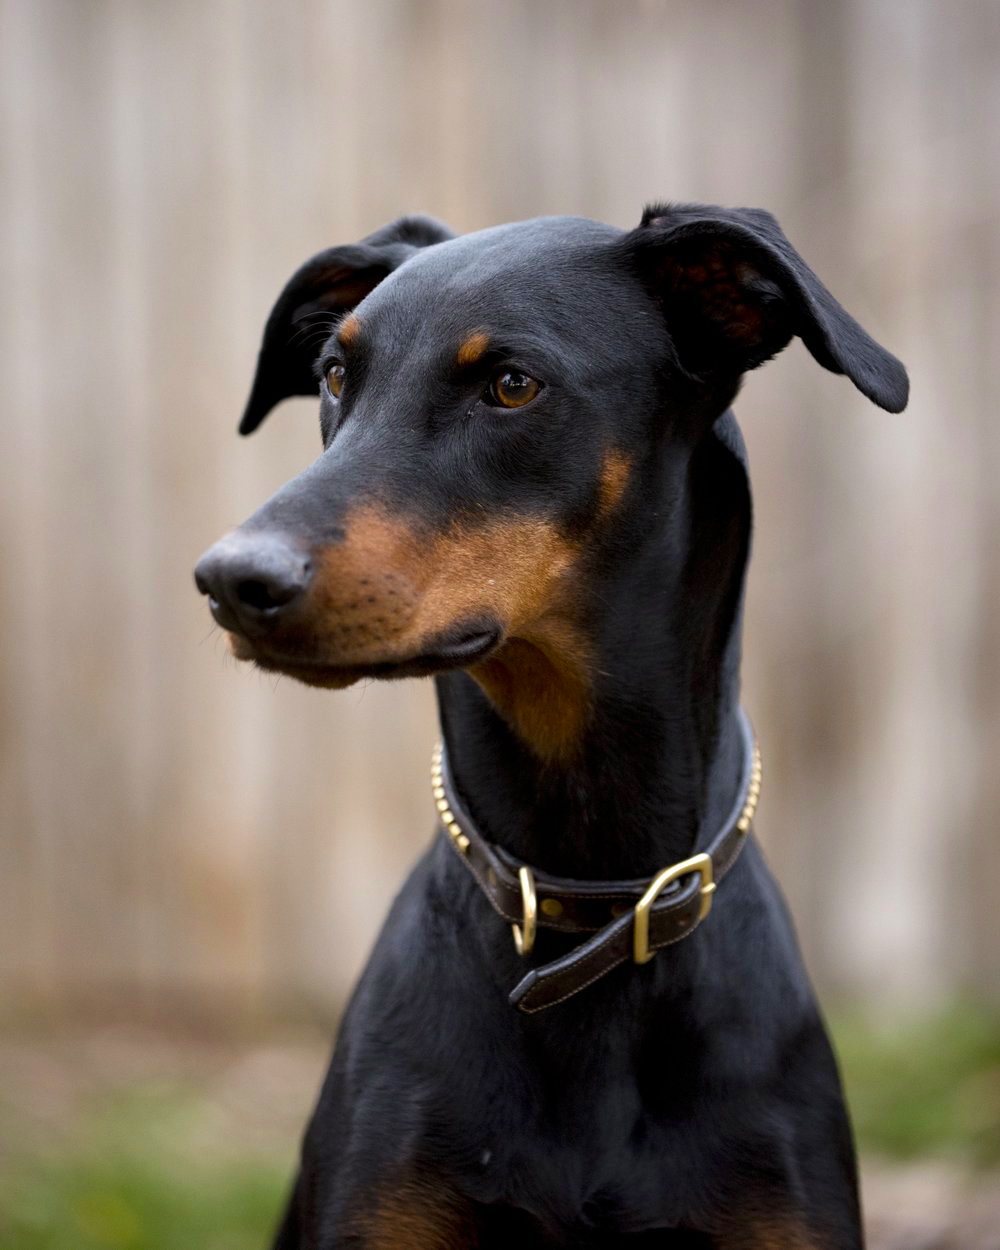 RUMOR – 3 years old, Doberman Pinscher   Rumor is our rescue dobie who looks much more intimidating than she actually is. Thinks she's a lapdog and doesn't see the appeal in adventuring or hunting. She's definitely the baby of the family and is perfectly happy to be the beta to Riddle's alpha. We got her at a sandwich shop in Boulder, CO in 2017 (for real, ask us the story) and she's been loving up on us ever since. She prefers to spend her days in the comforts of her own home cuddled up on a couch.